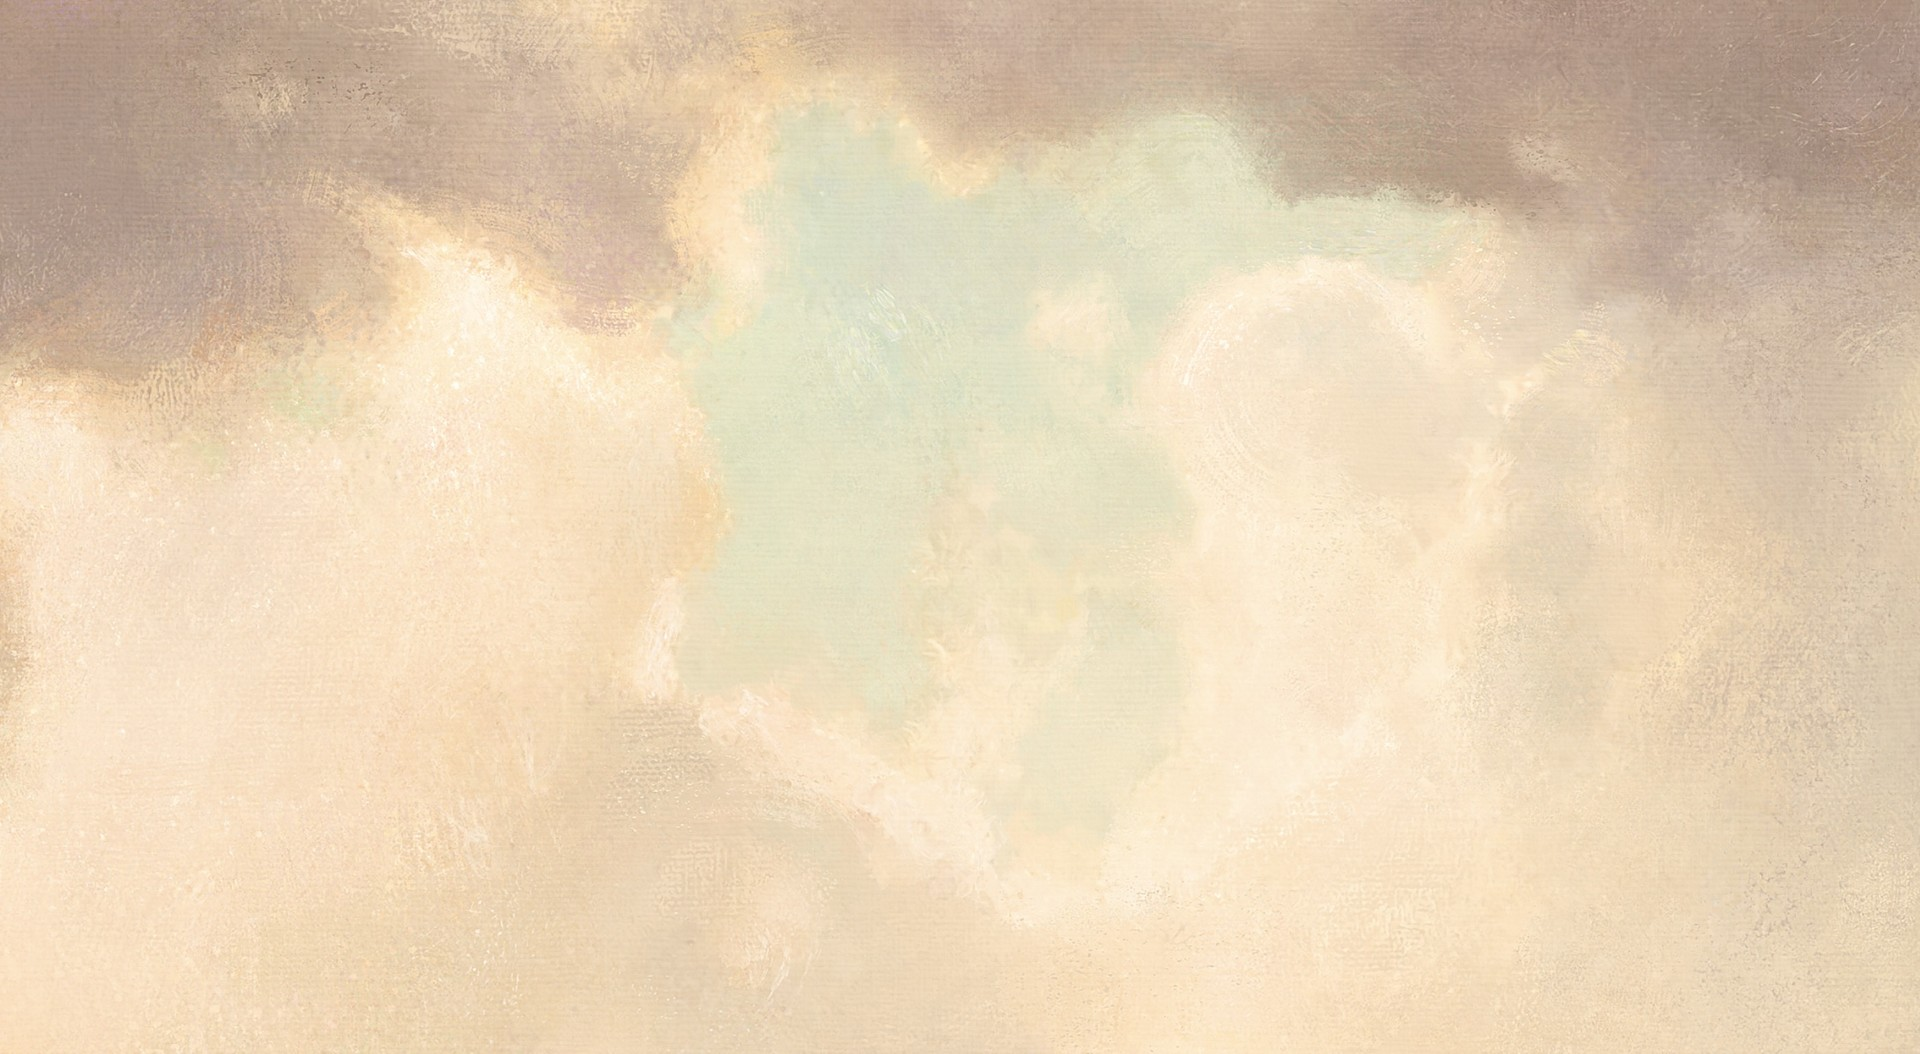 pastel color accents and some custom smudge brushes for some smooth looking painterly clouds